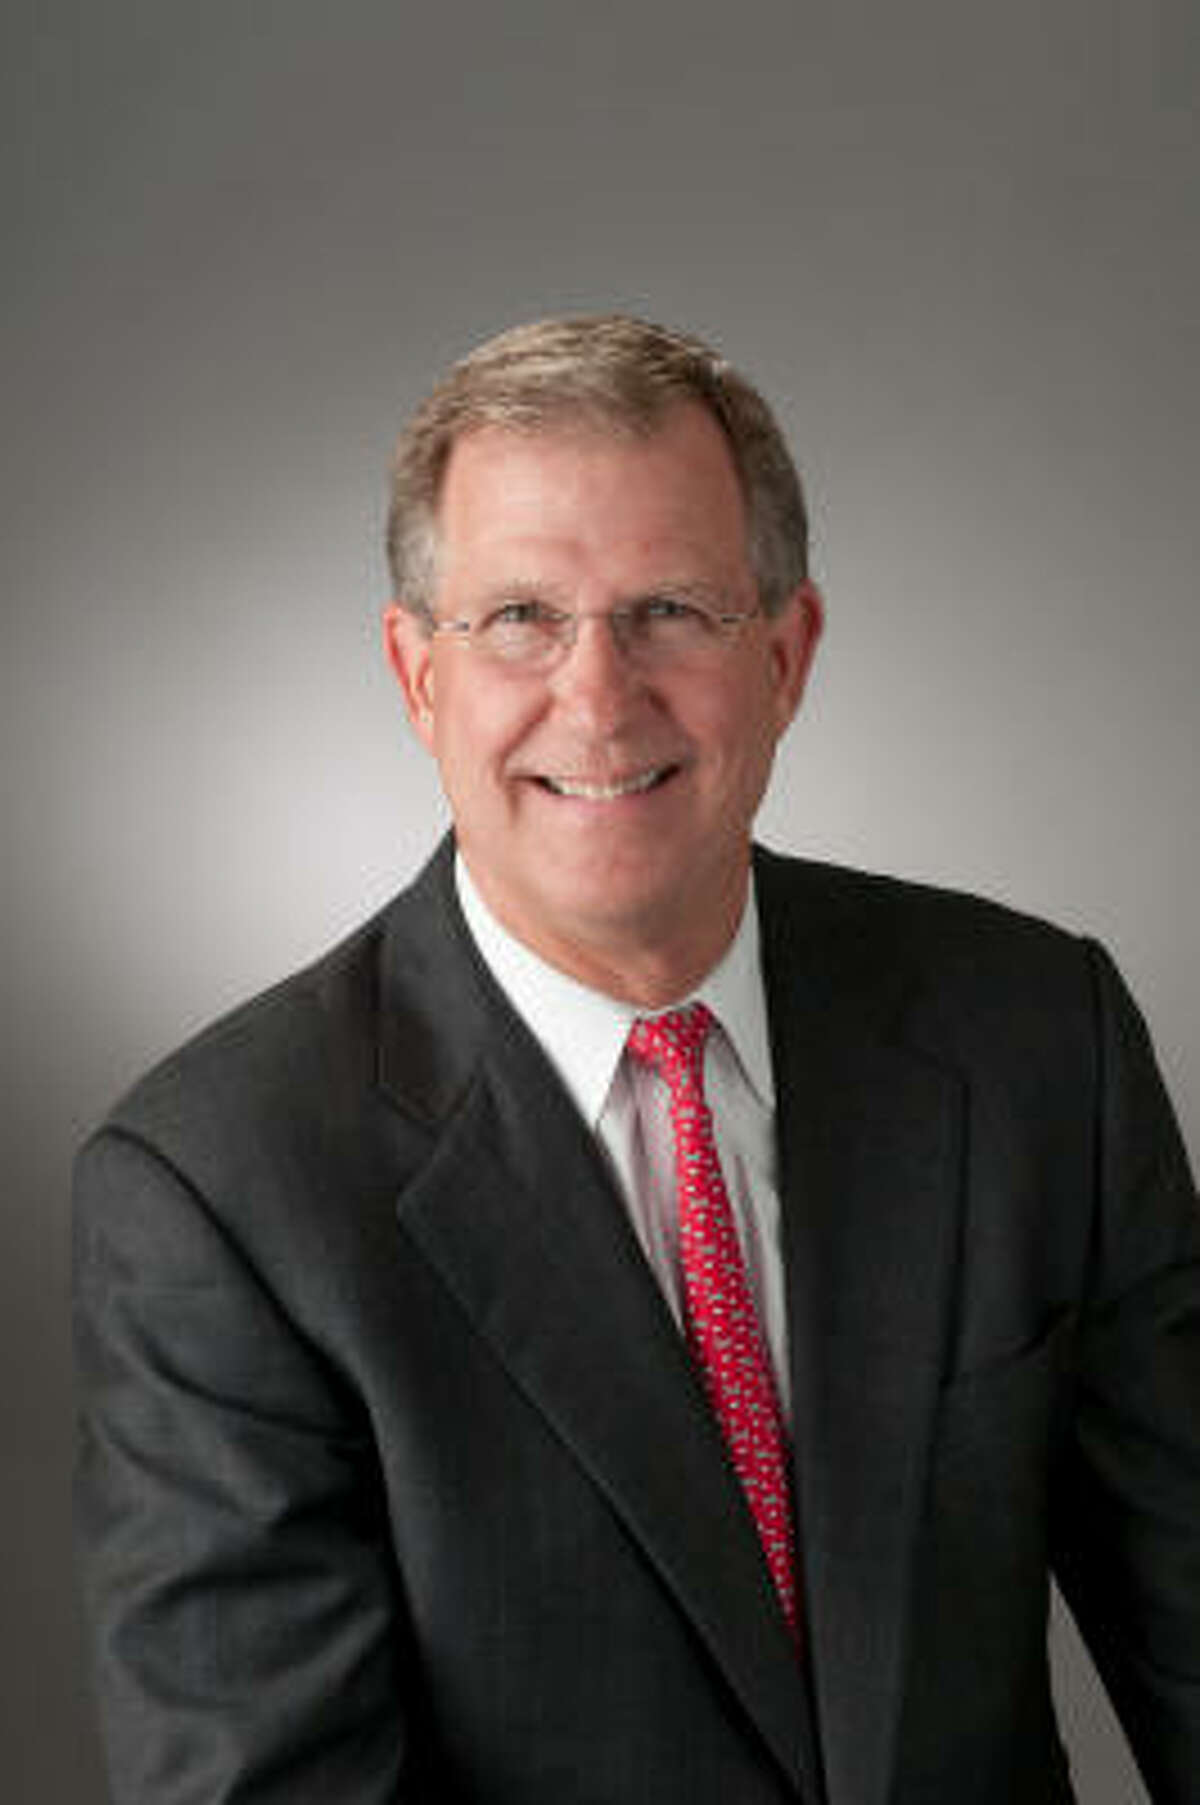 Transwestern's founder and chairman, Robert Duncan, was inducted into the Texas Business Hall of Fame.